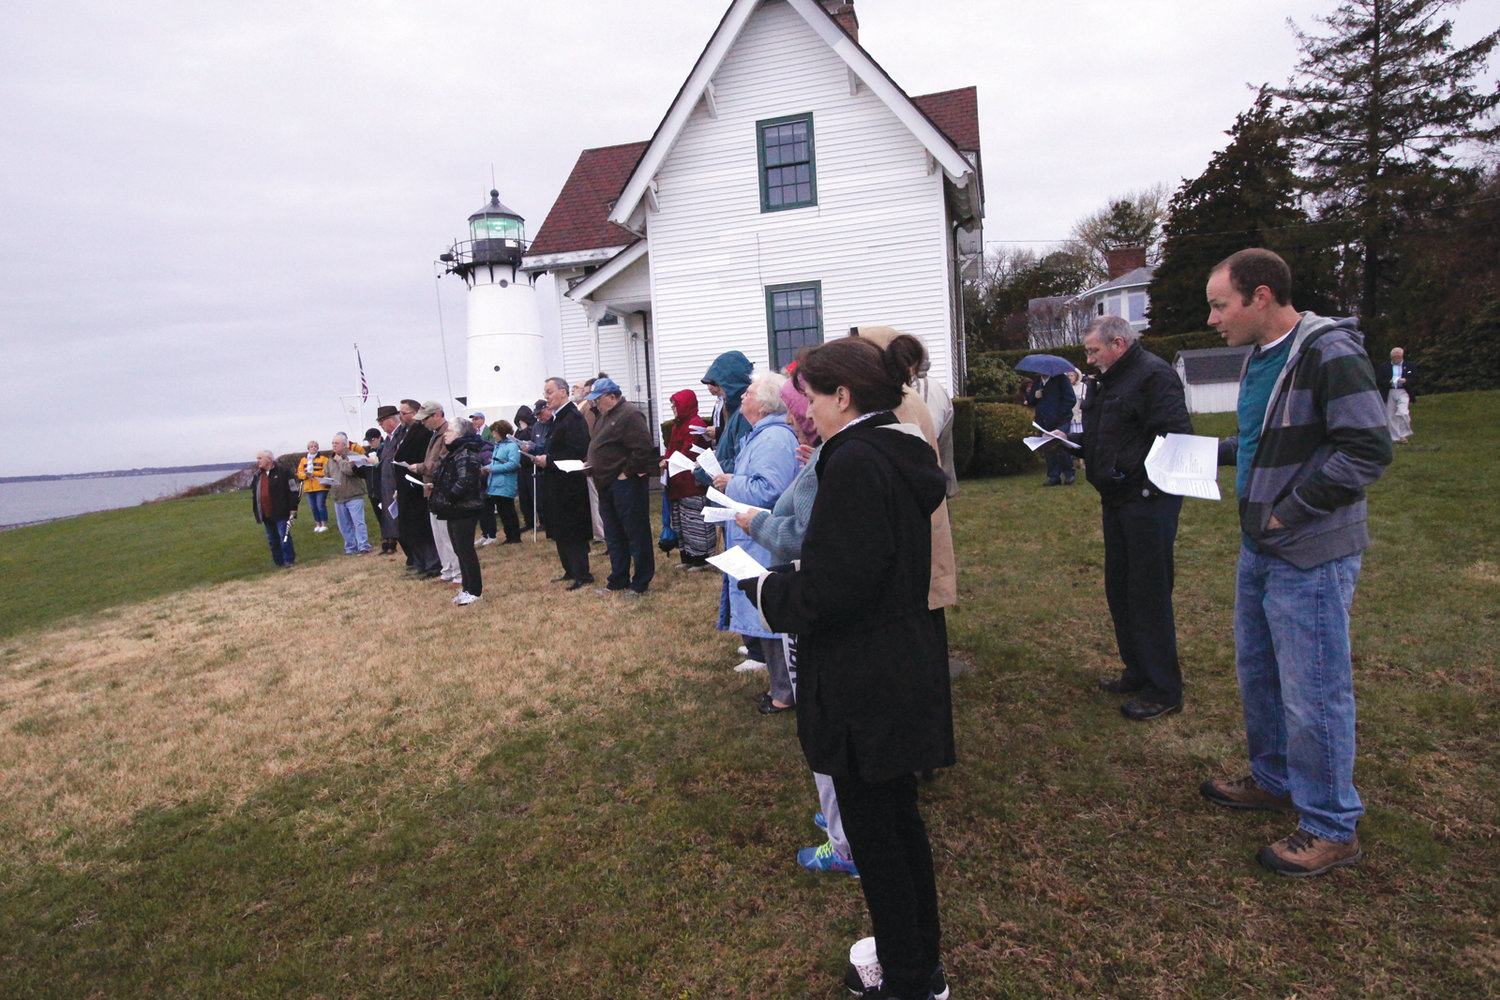 NO SUN…AND NO RAIN: Worshipers were blessed with warm weather and no rain at Easter sunrise services at Warwick Neck Light.